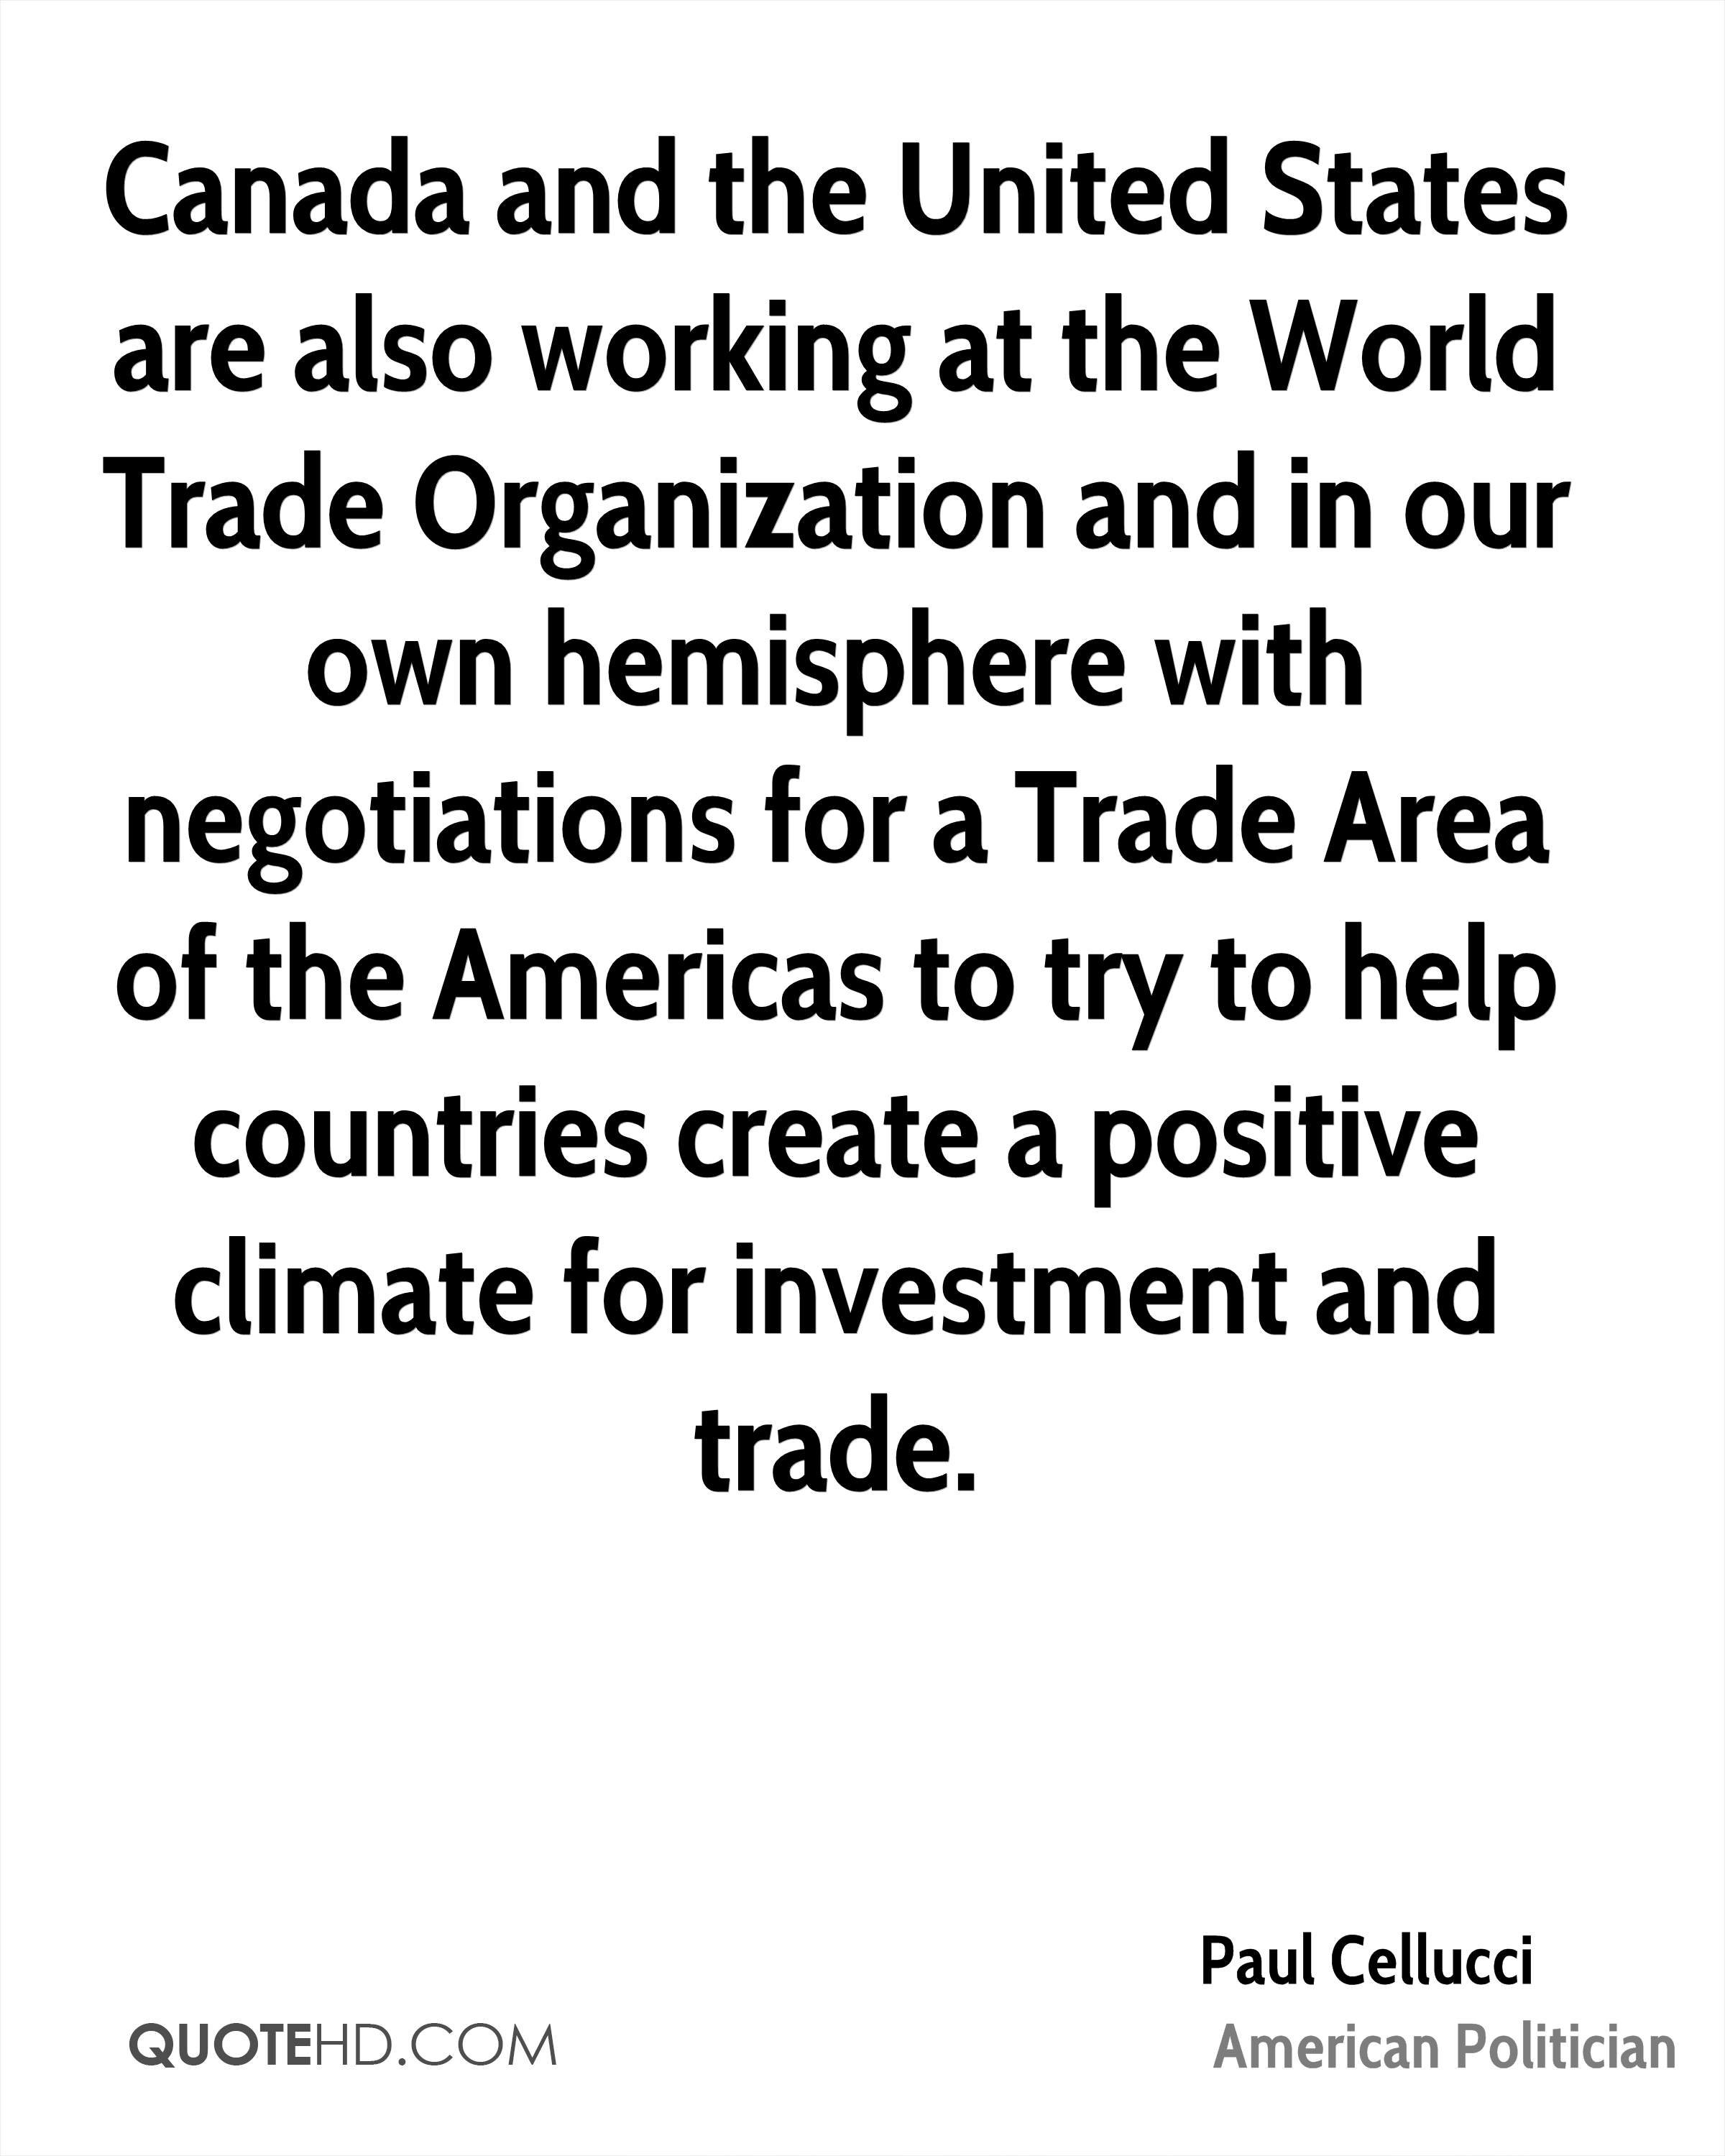 Canada and the United States are also working at the World Trade Organization and in our own hemisphere with negotiations for a Trade Area of the Americas to try to help countries create a positive climate for investment and trade.